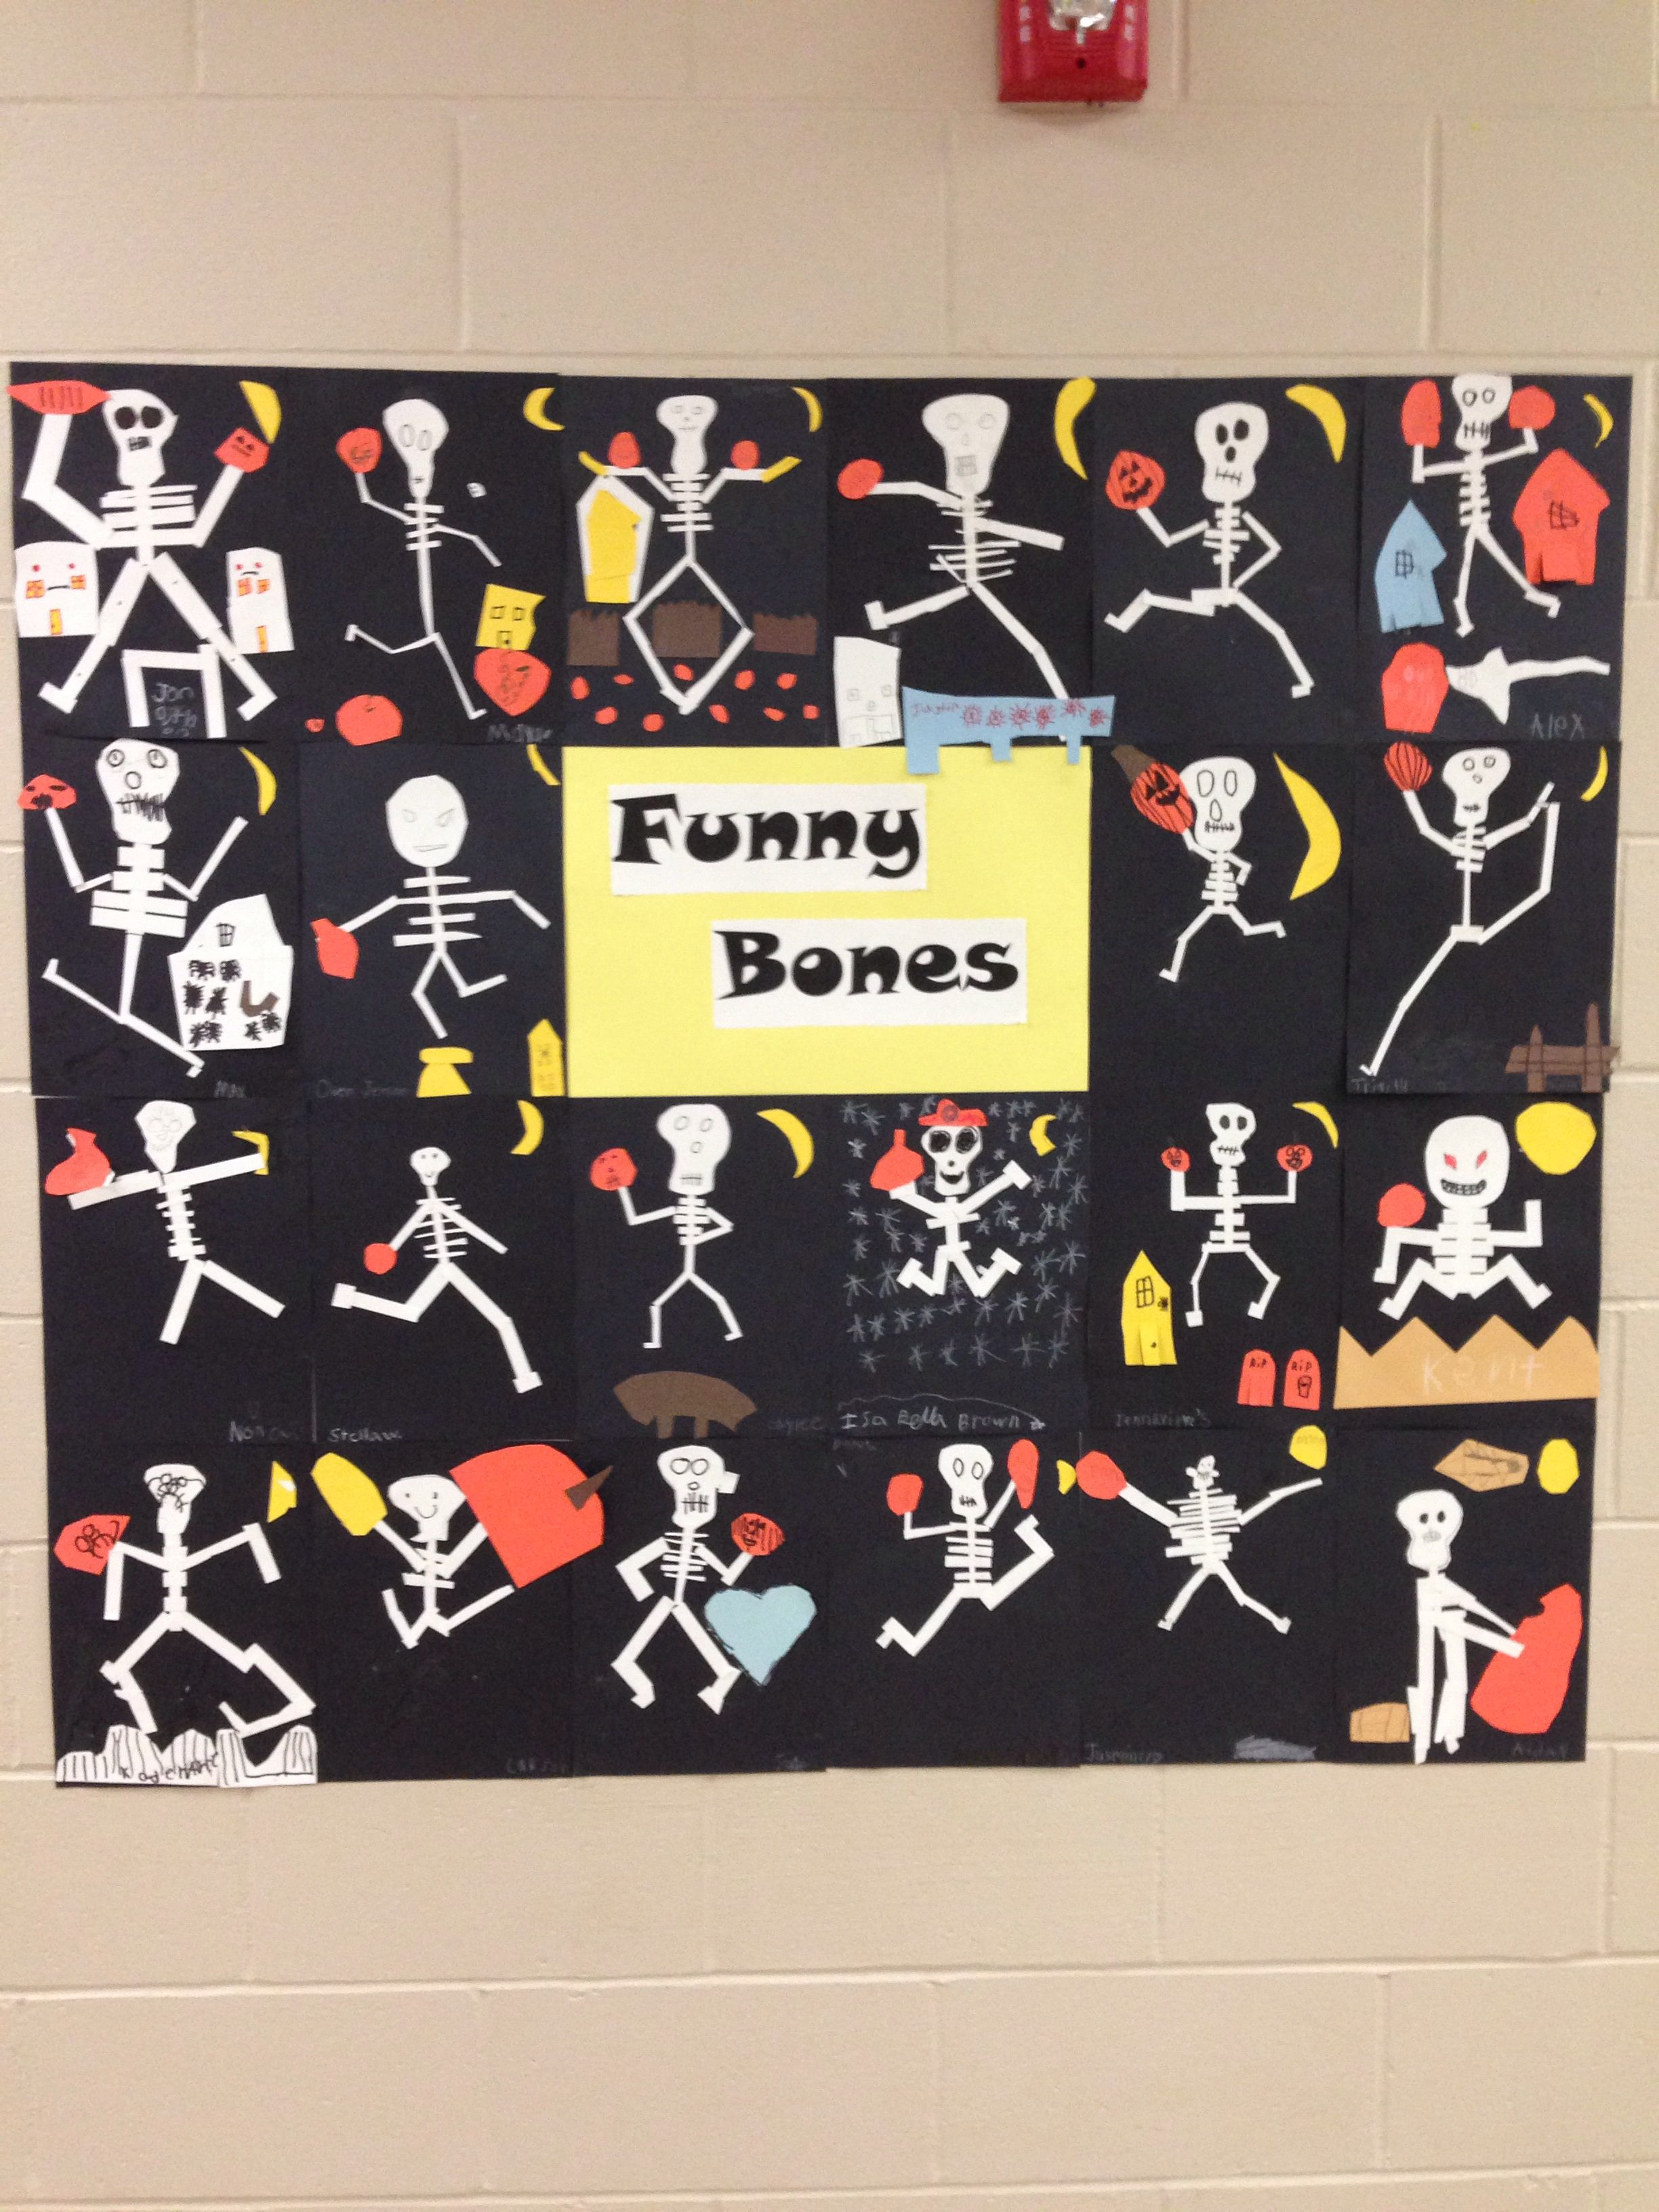 Halloween Bulletin Board Funny Bones I Love How Each Skeleton Is So